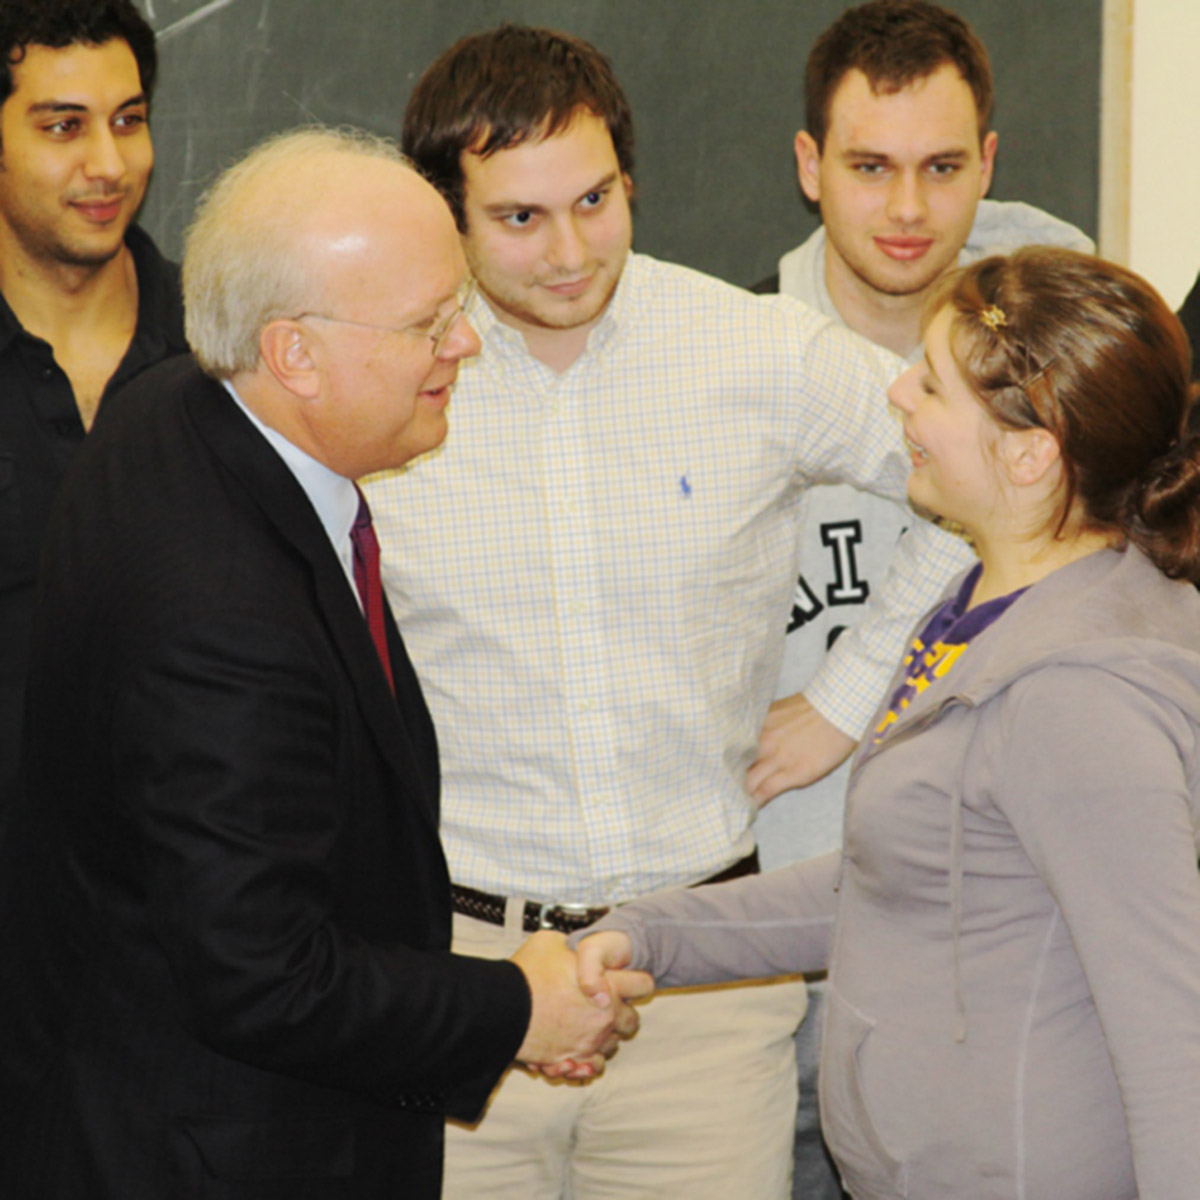 Republican political strategist Karl Rove meets with Randolph students prior to a lecture on campus.